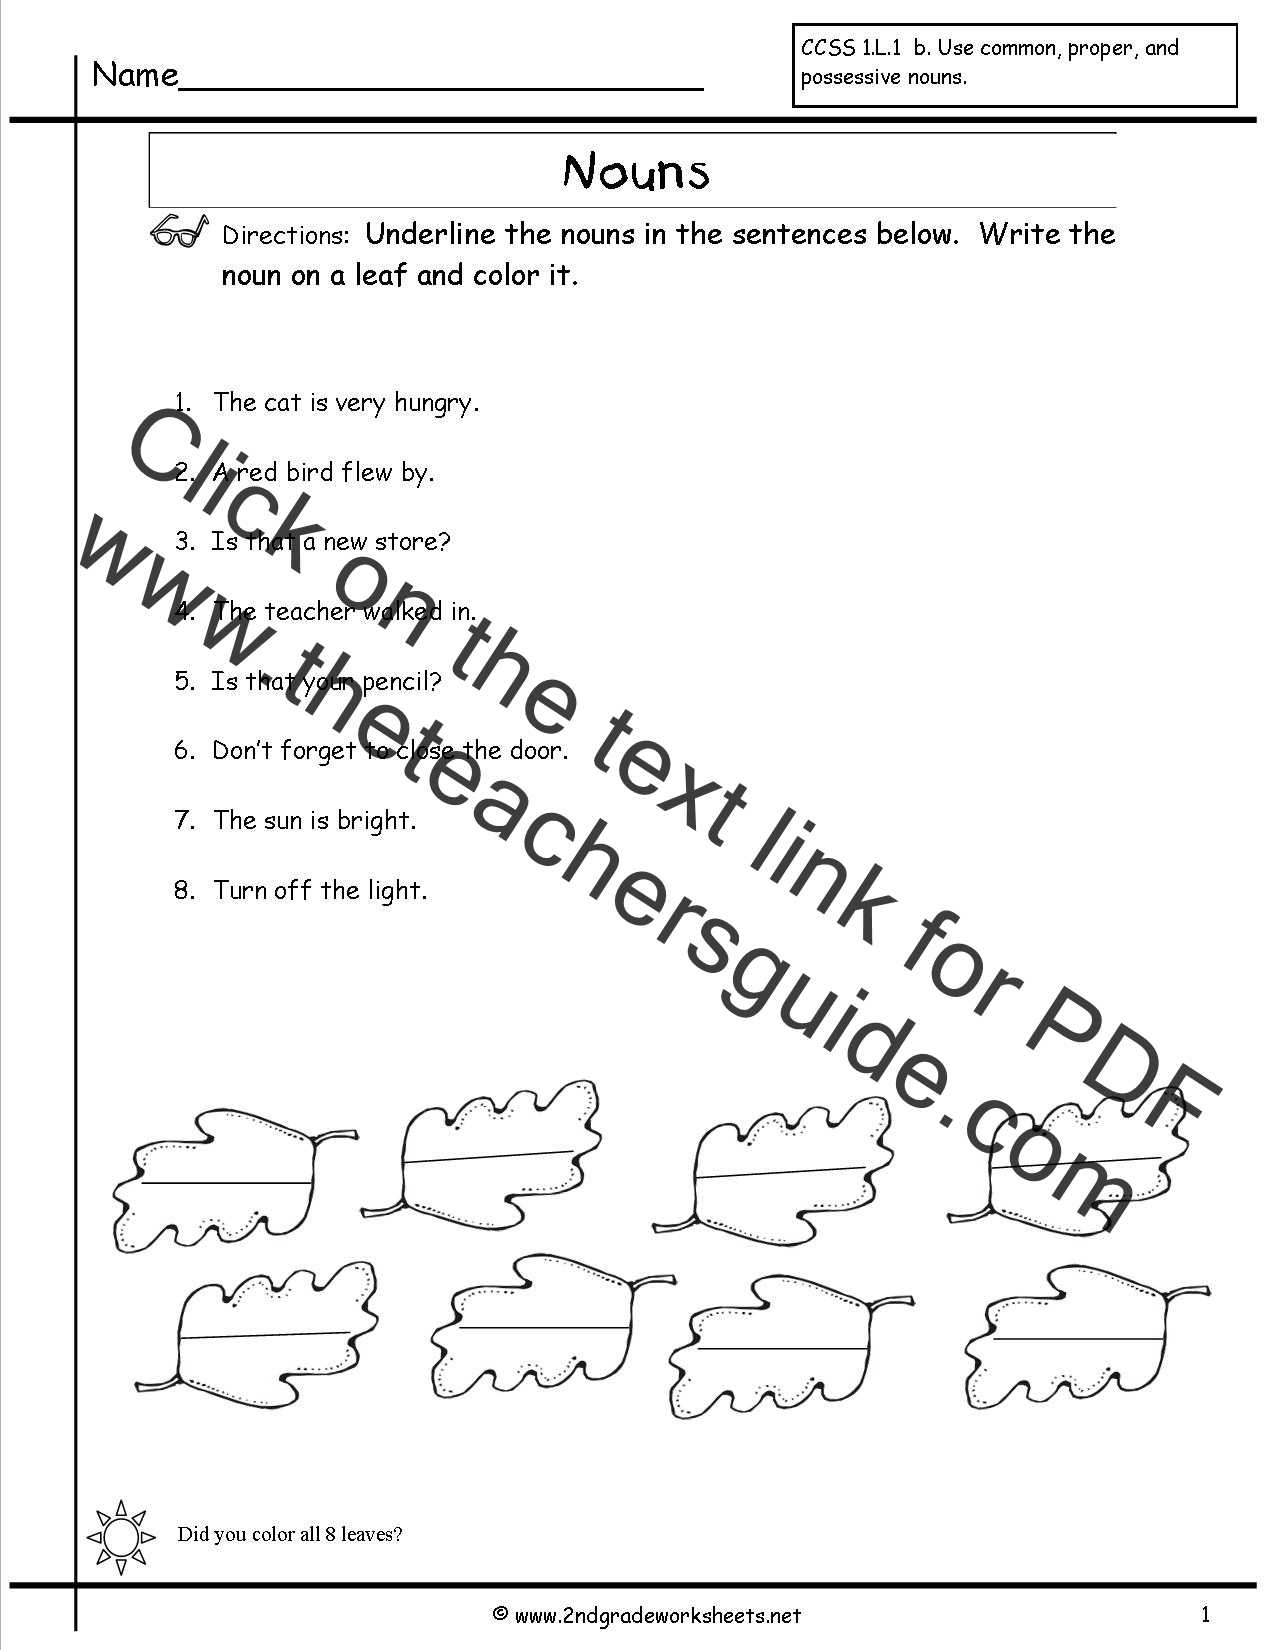 Nouns Worksheets and Printouts – Nouns Worksheets